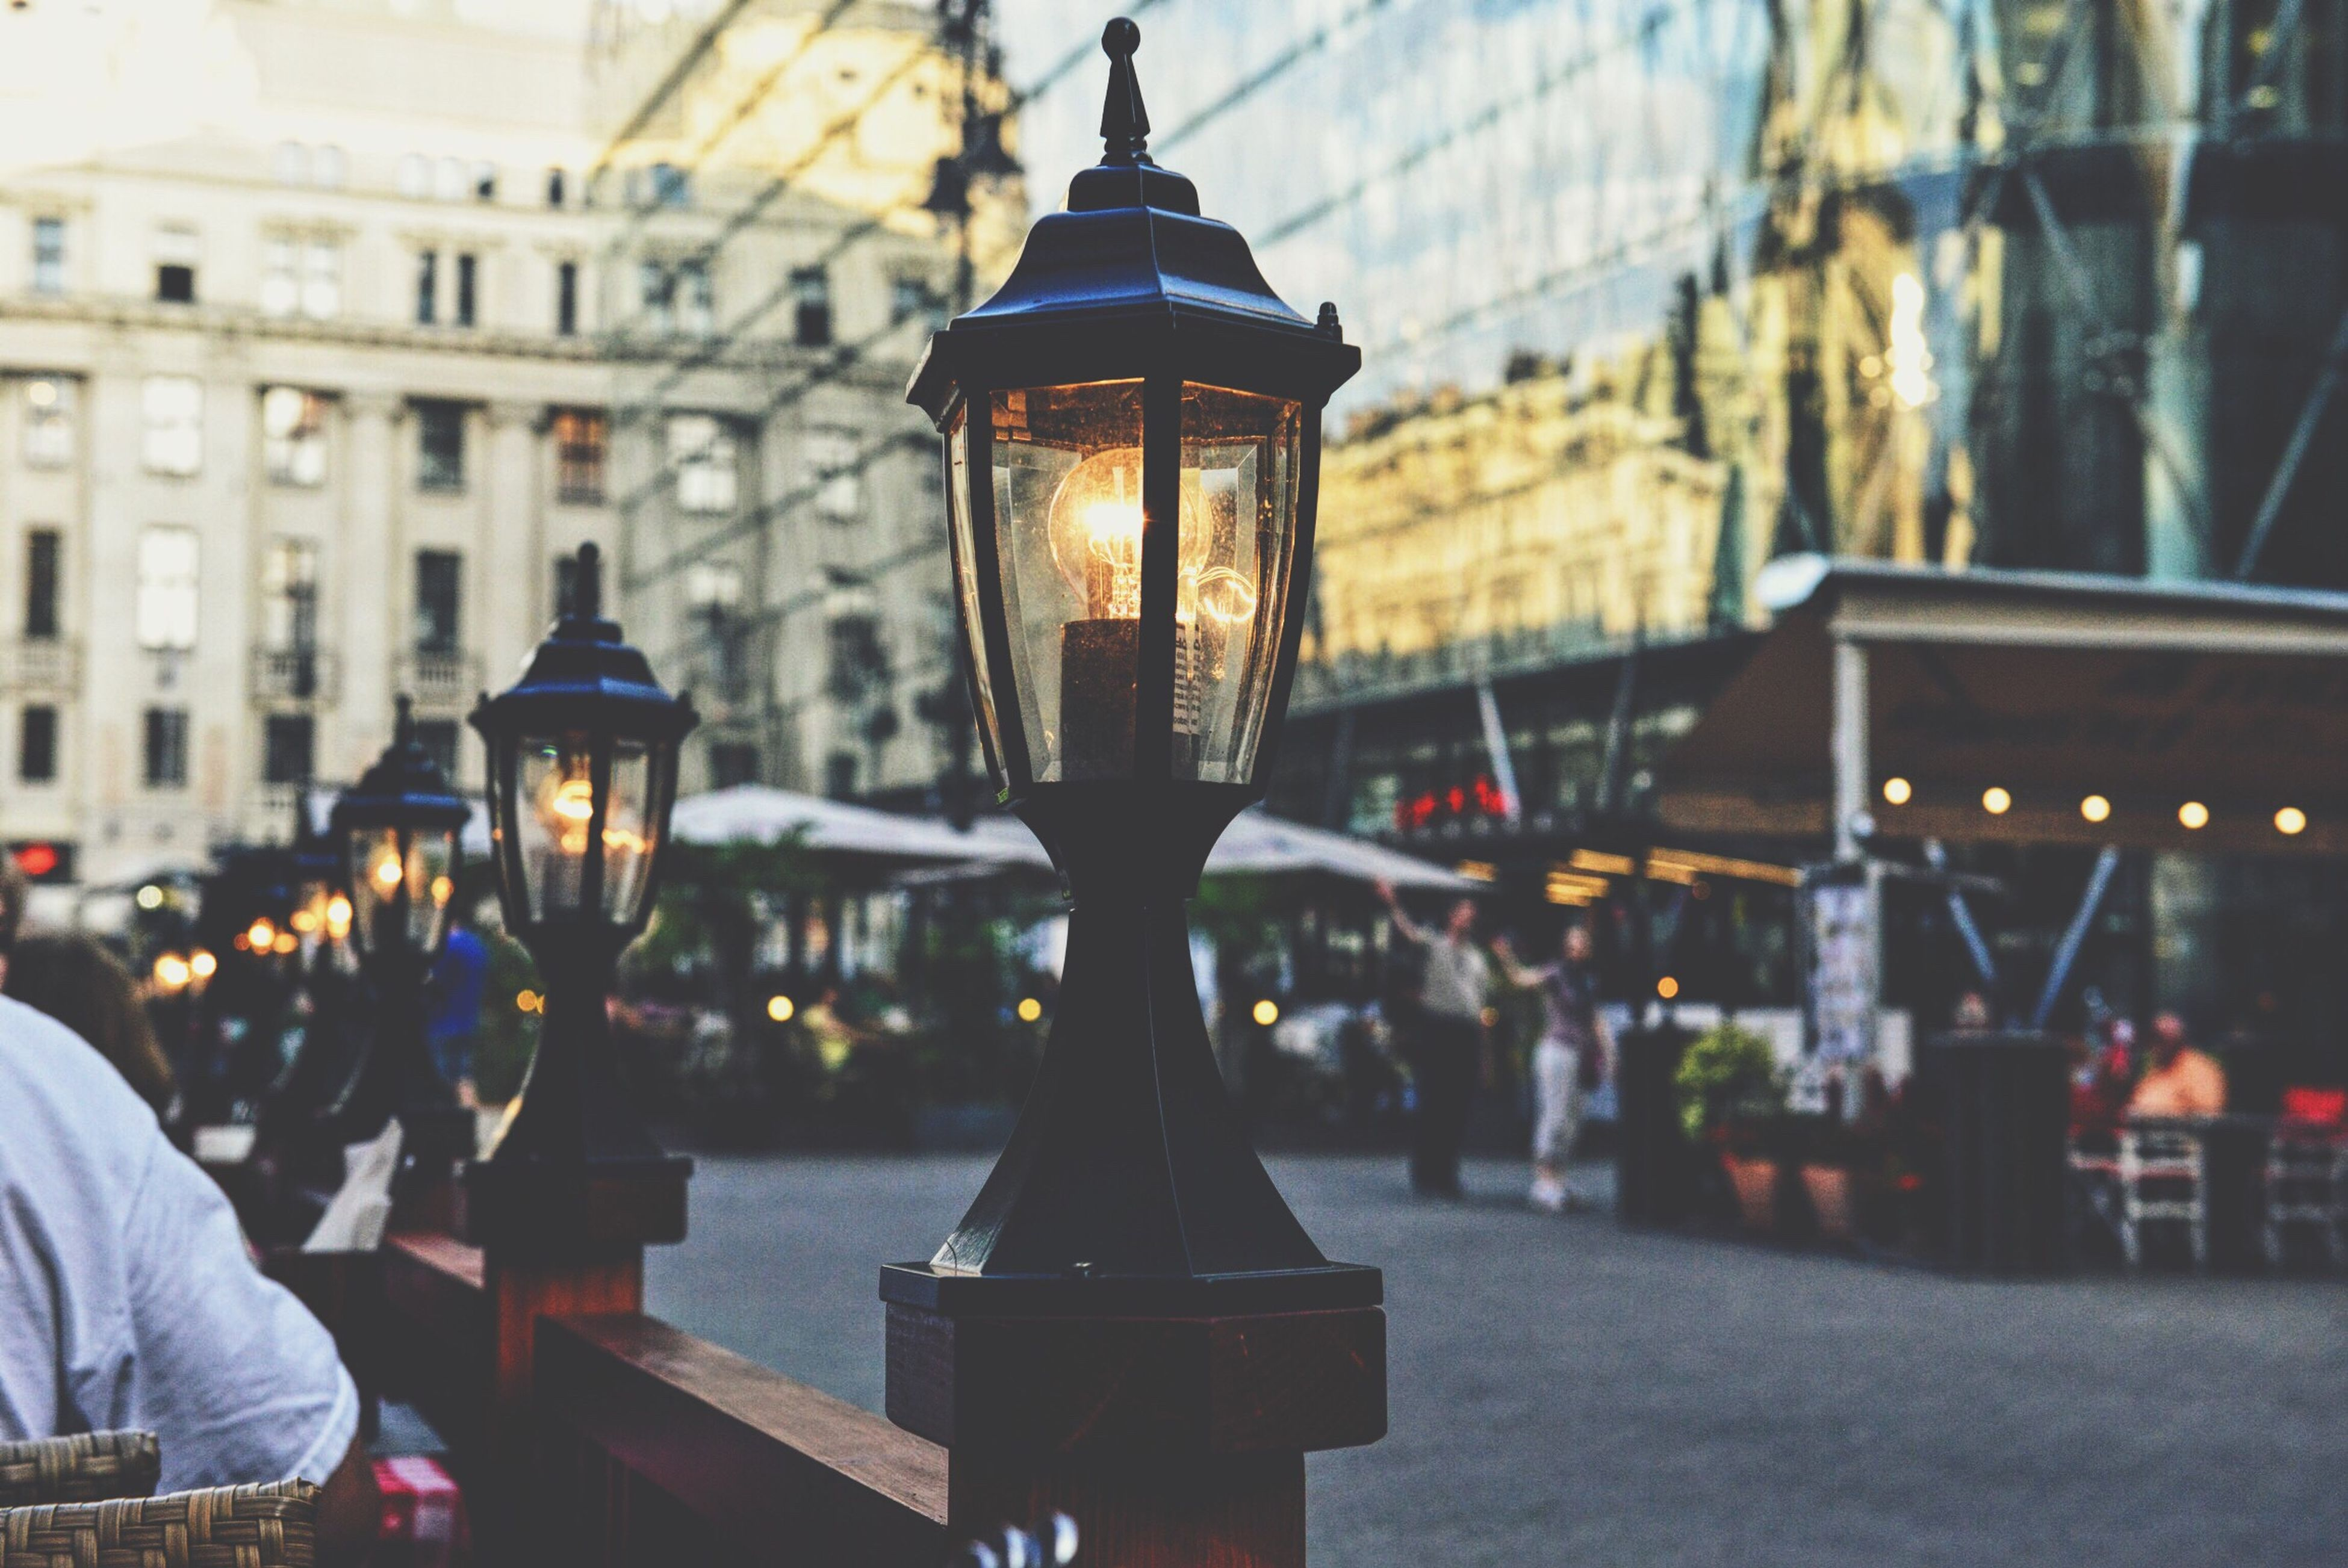 illuminated, focus on foreground, lighting equipment, men, building exterior, architecture, built structure, incidental people, night, selective focus, restaurant, lifestyles, street light, rear view, religion, close-up, dusk, table